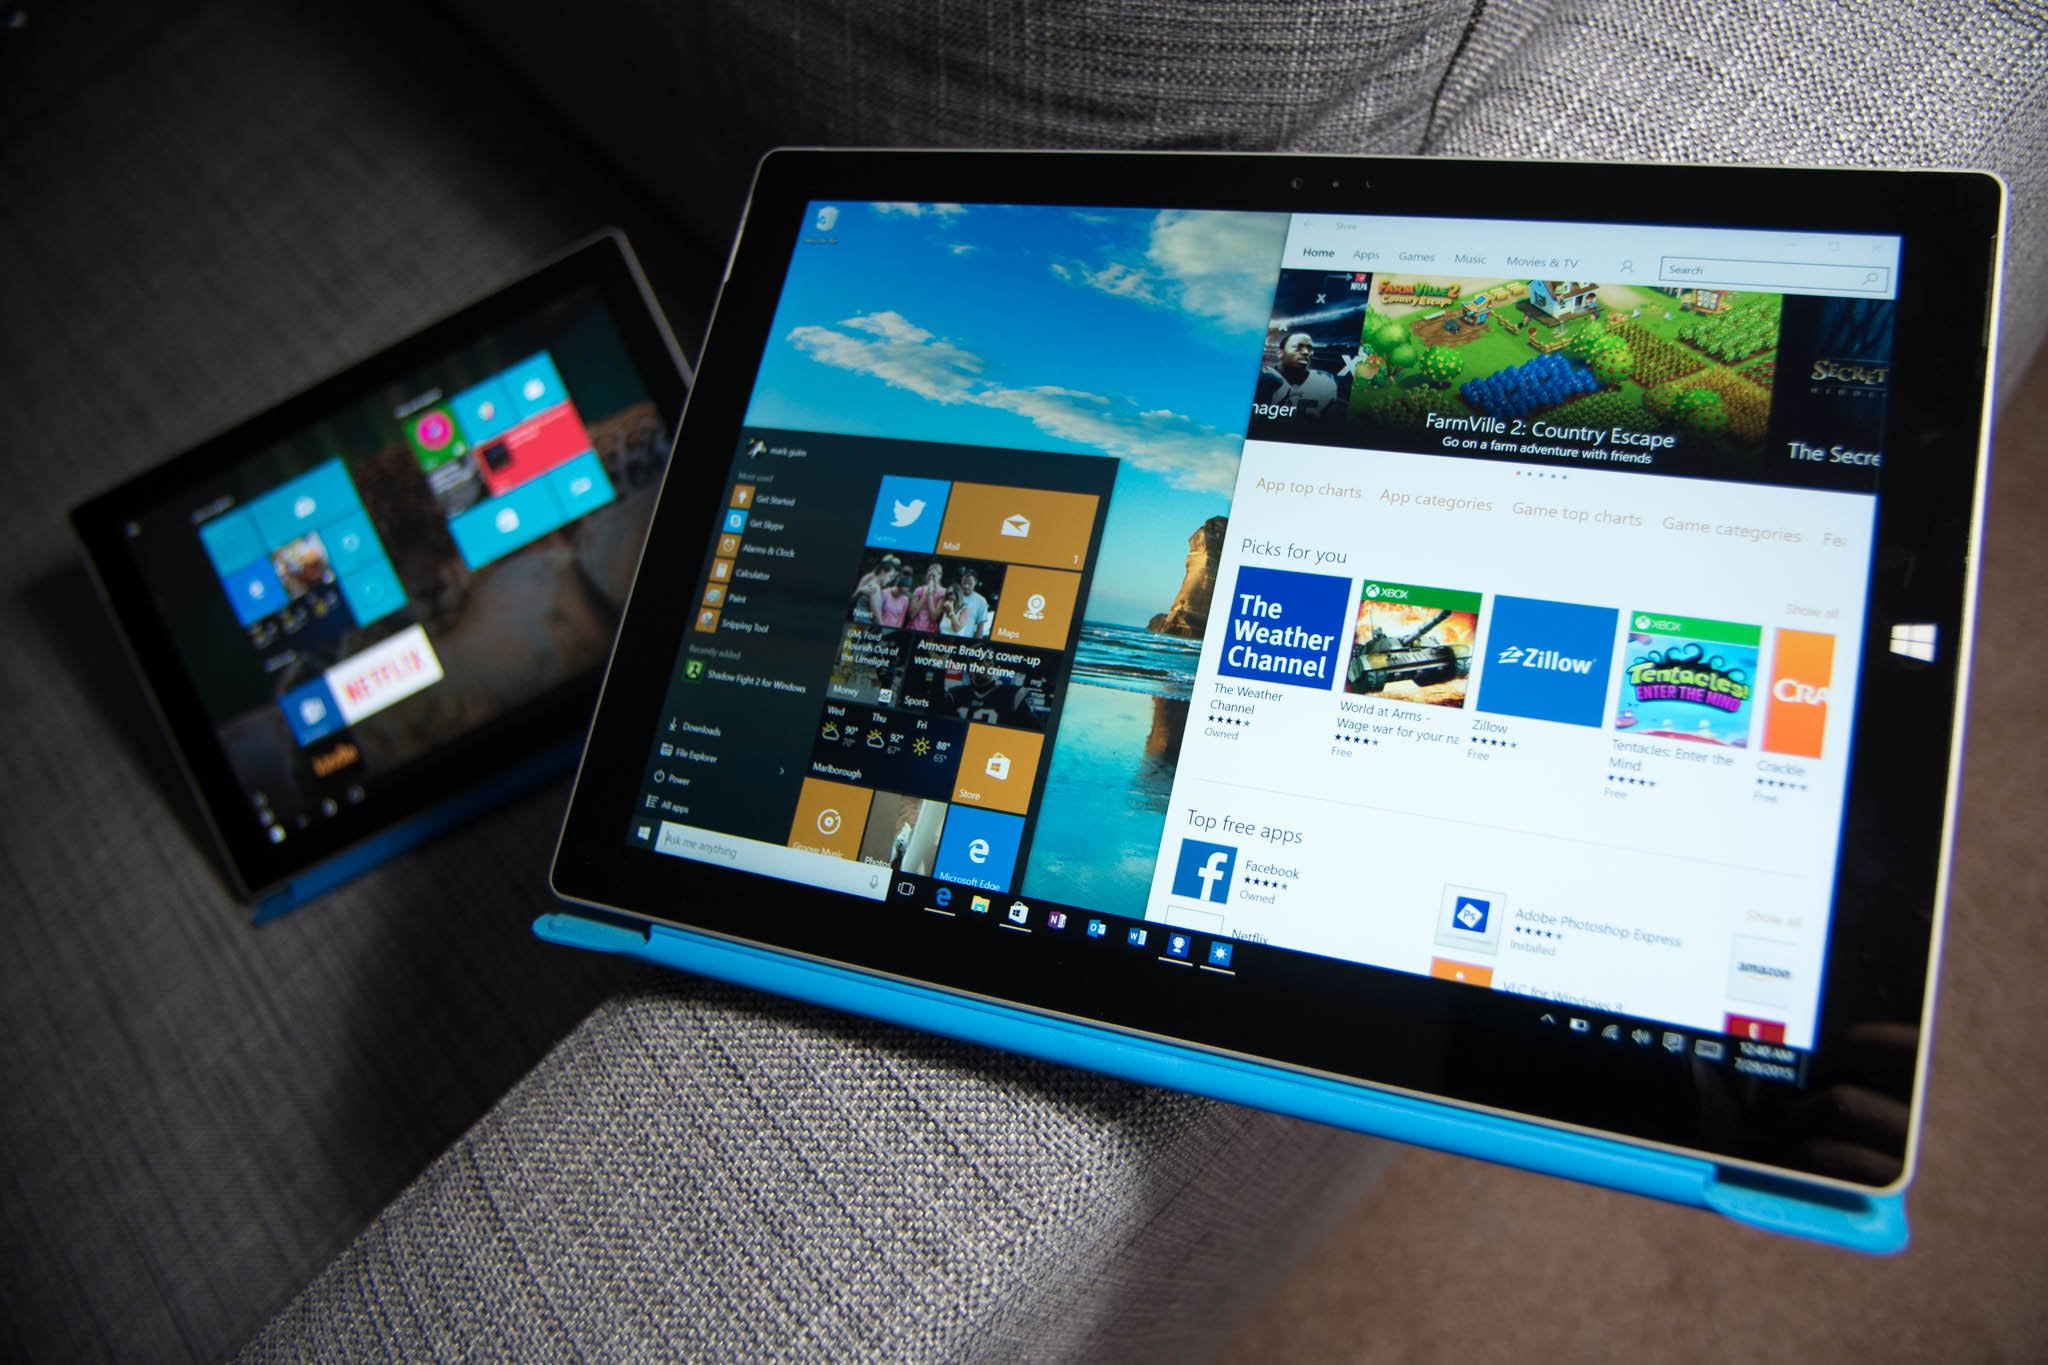 Windows 10 build 14332 brings Cortana search for Office 365 and more